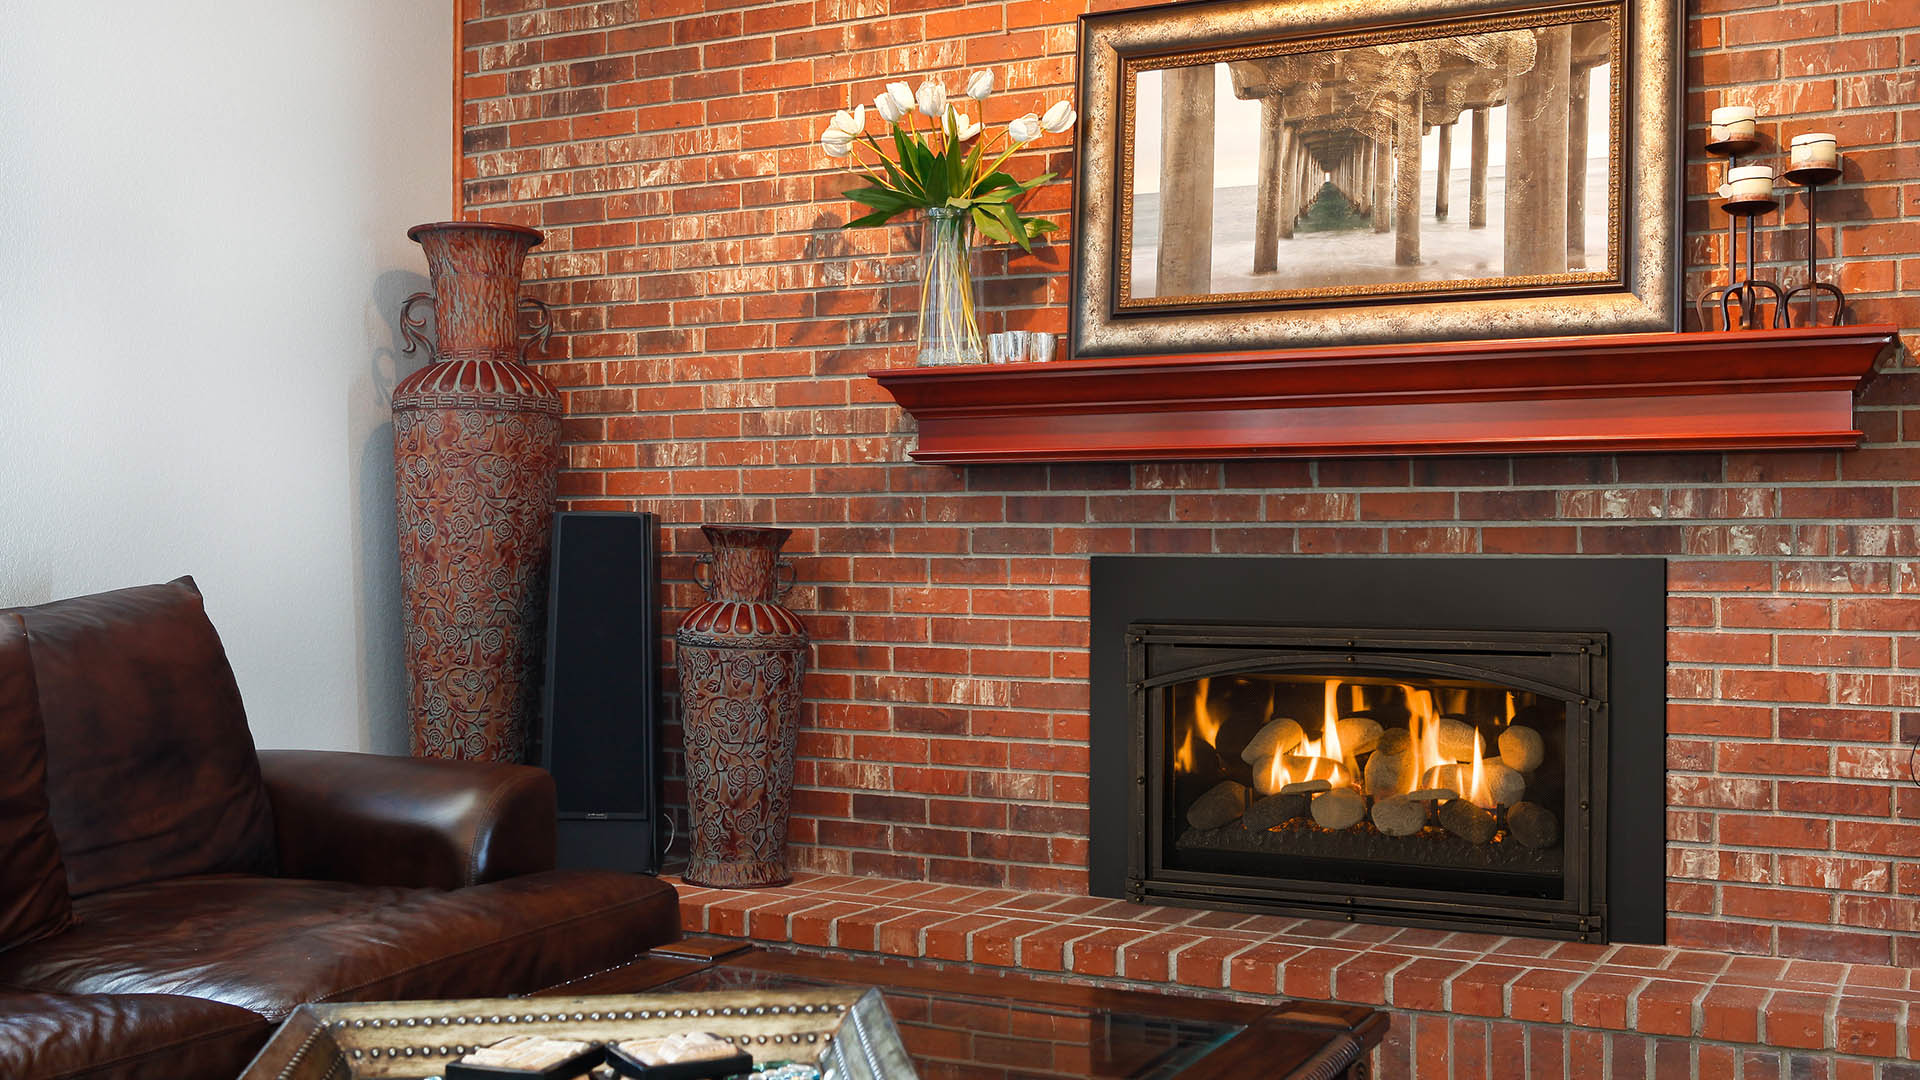 Efficiency of gas fireplace - Inserts